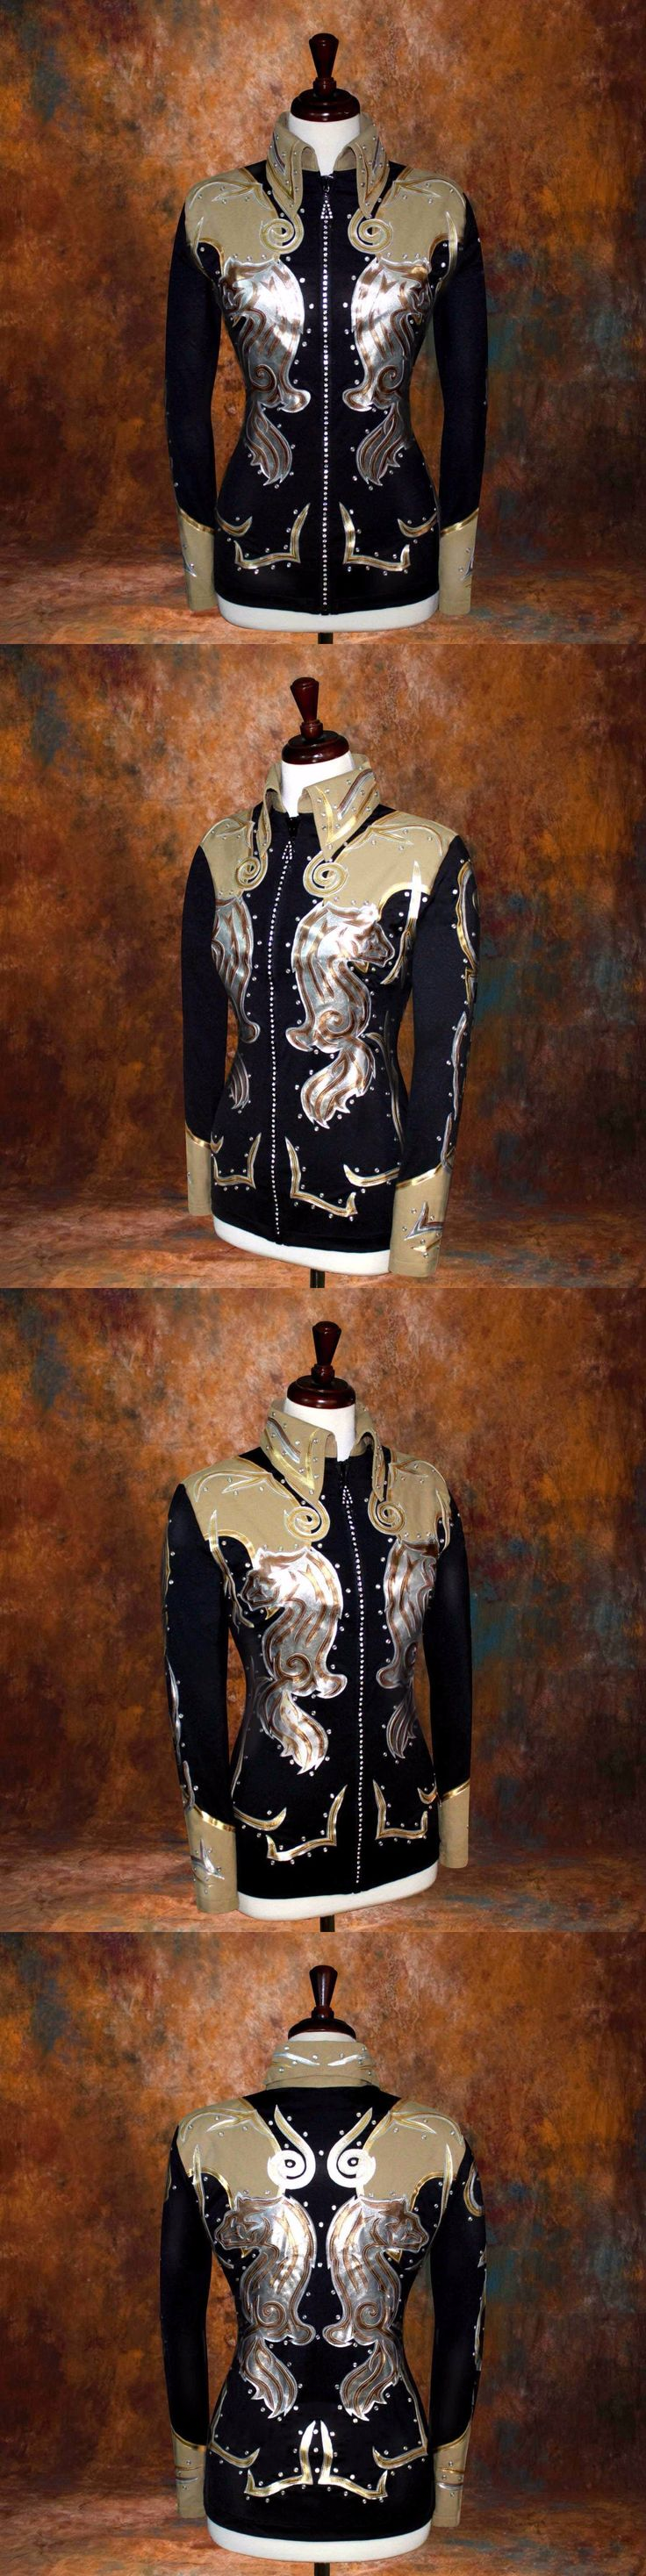 Other Rider Clothing 3167: Medium Showmanship Pleasure Horsemanship Show Jacket Shirt Rodeo Queen Rail -> BUY IT NOW ONLY: $249.98 on eBay!